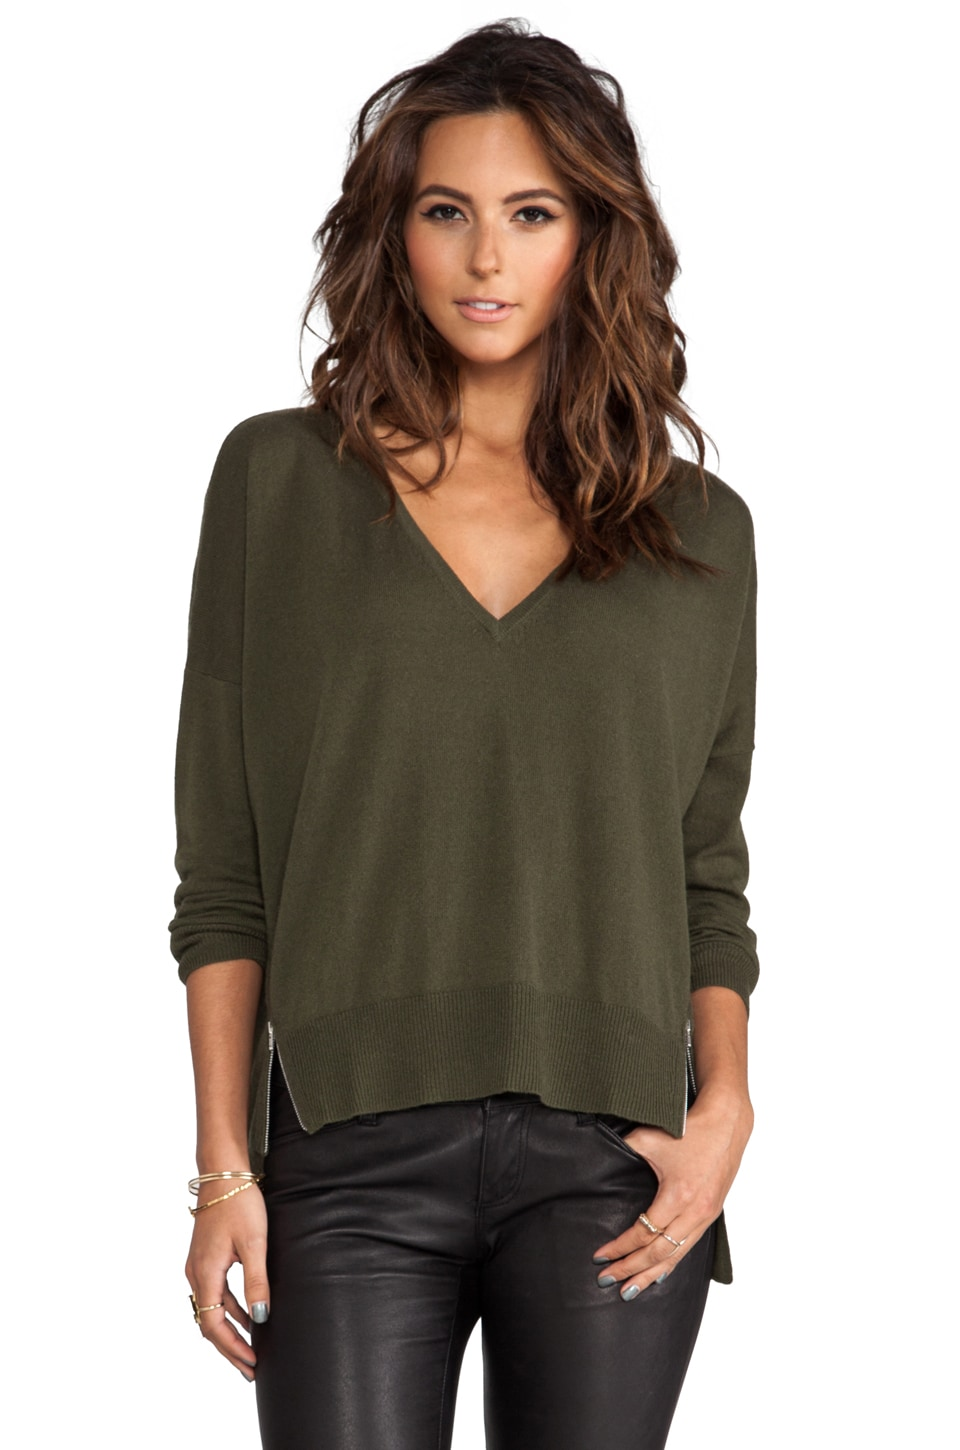 Autumn Cashmere Hi Lo V-Neck Sweater with Side Zippers in Sorrel